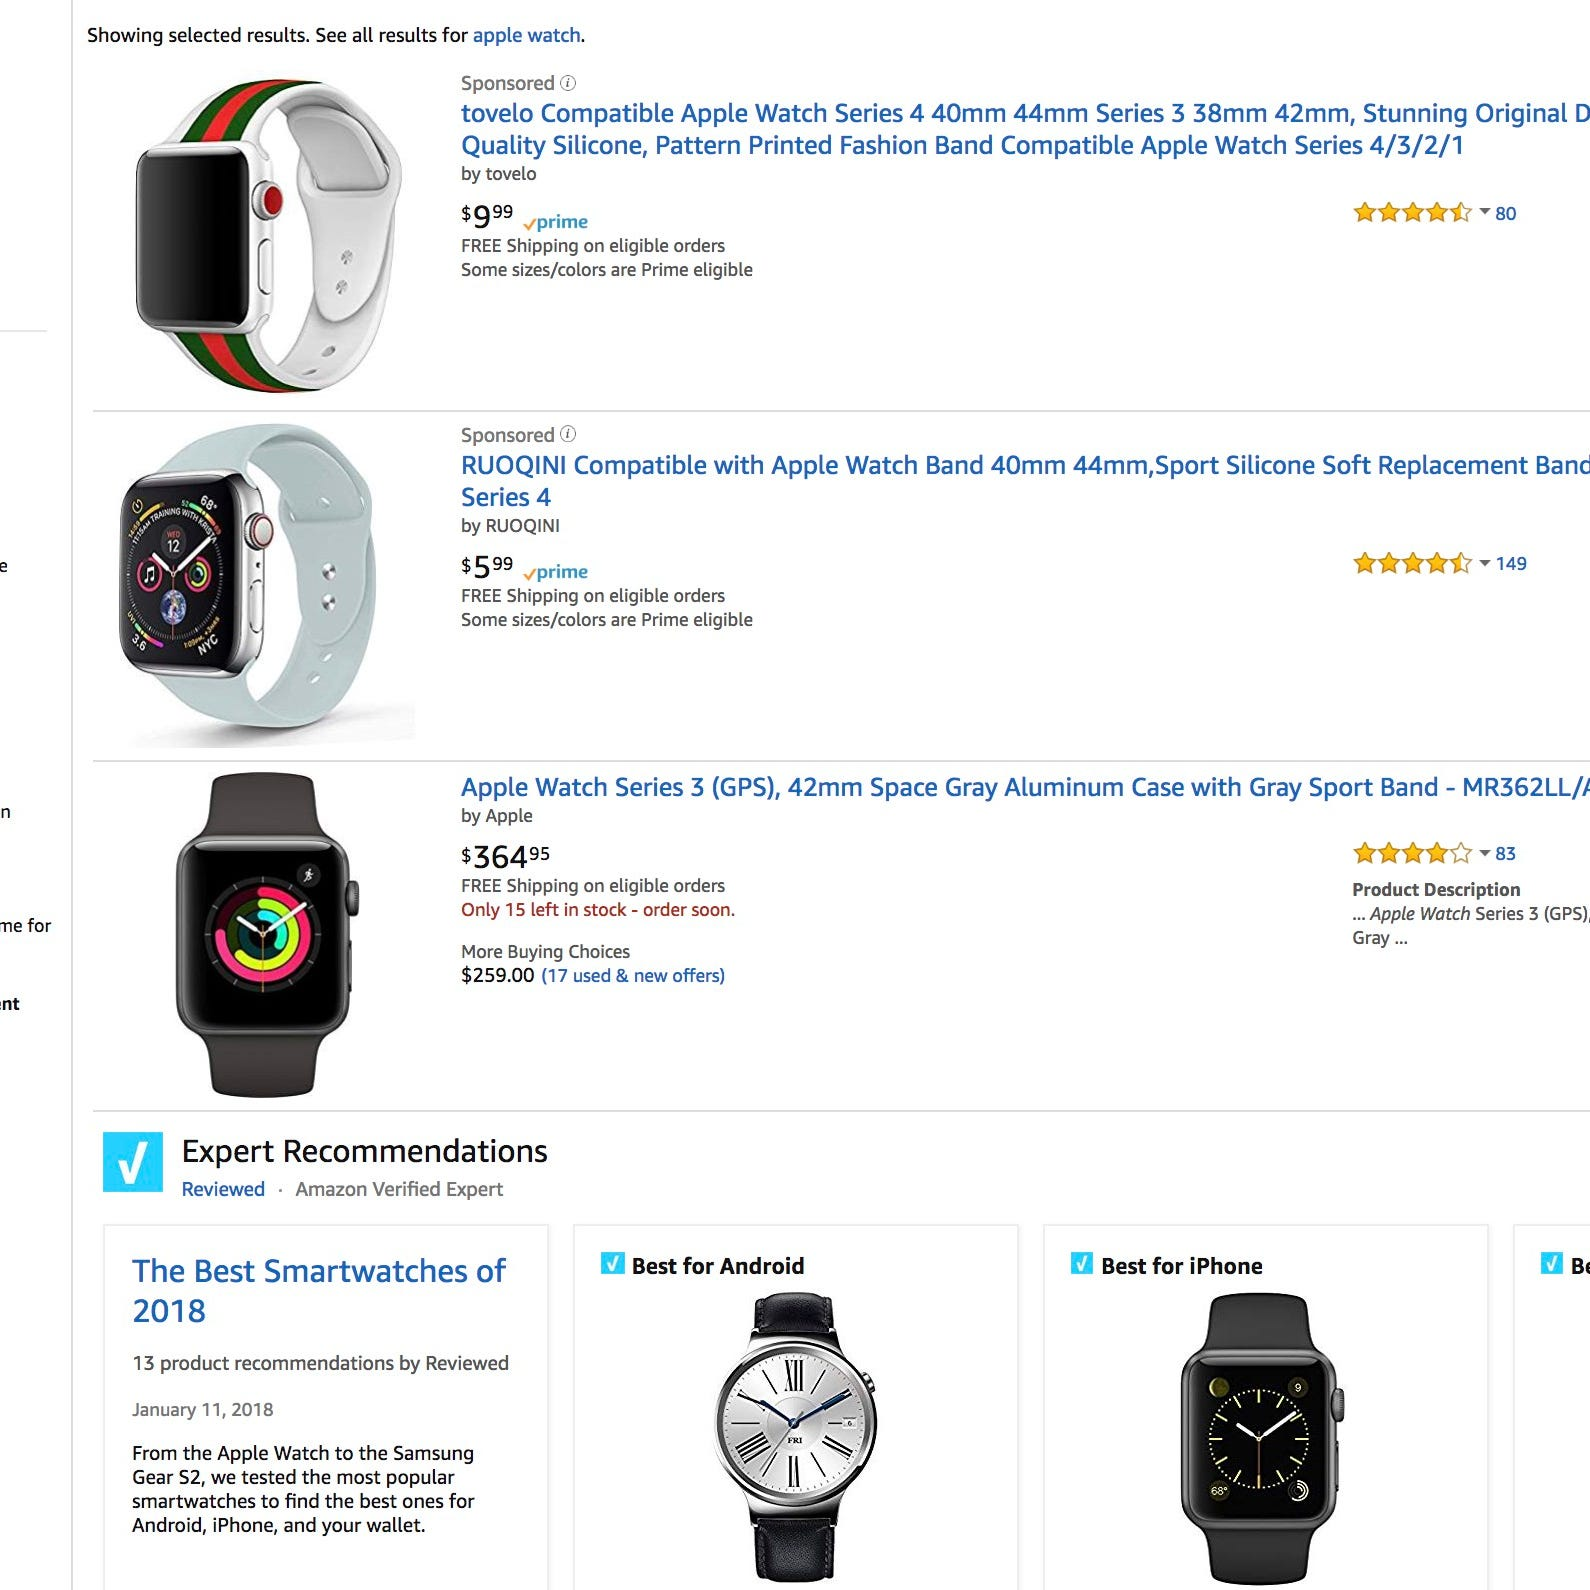 Amazon's sponsored ads over the best-selling smartwatch from Apple